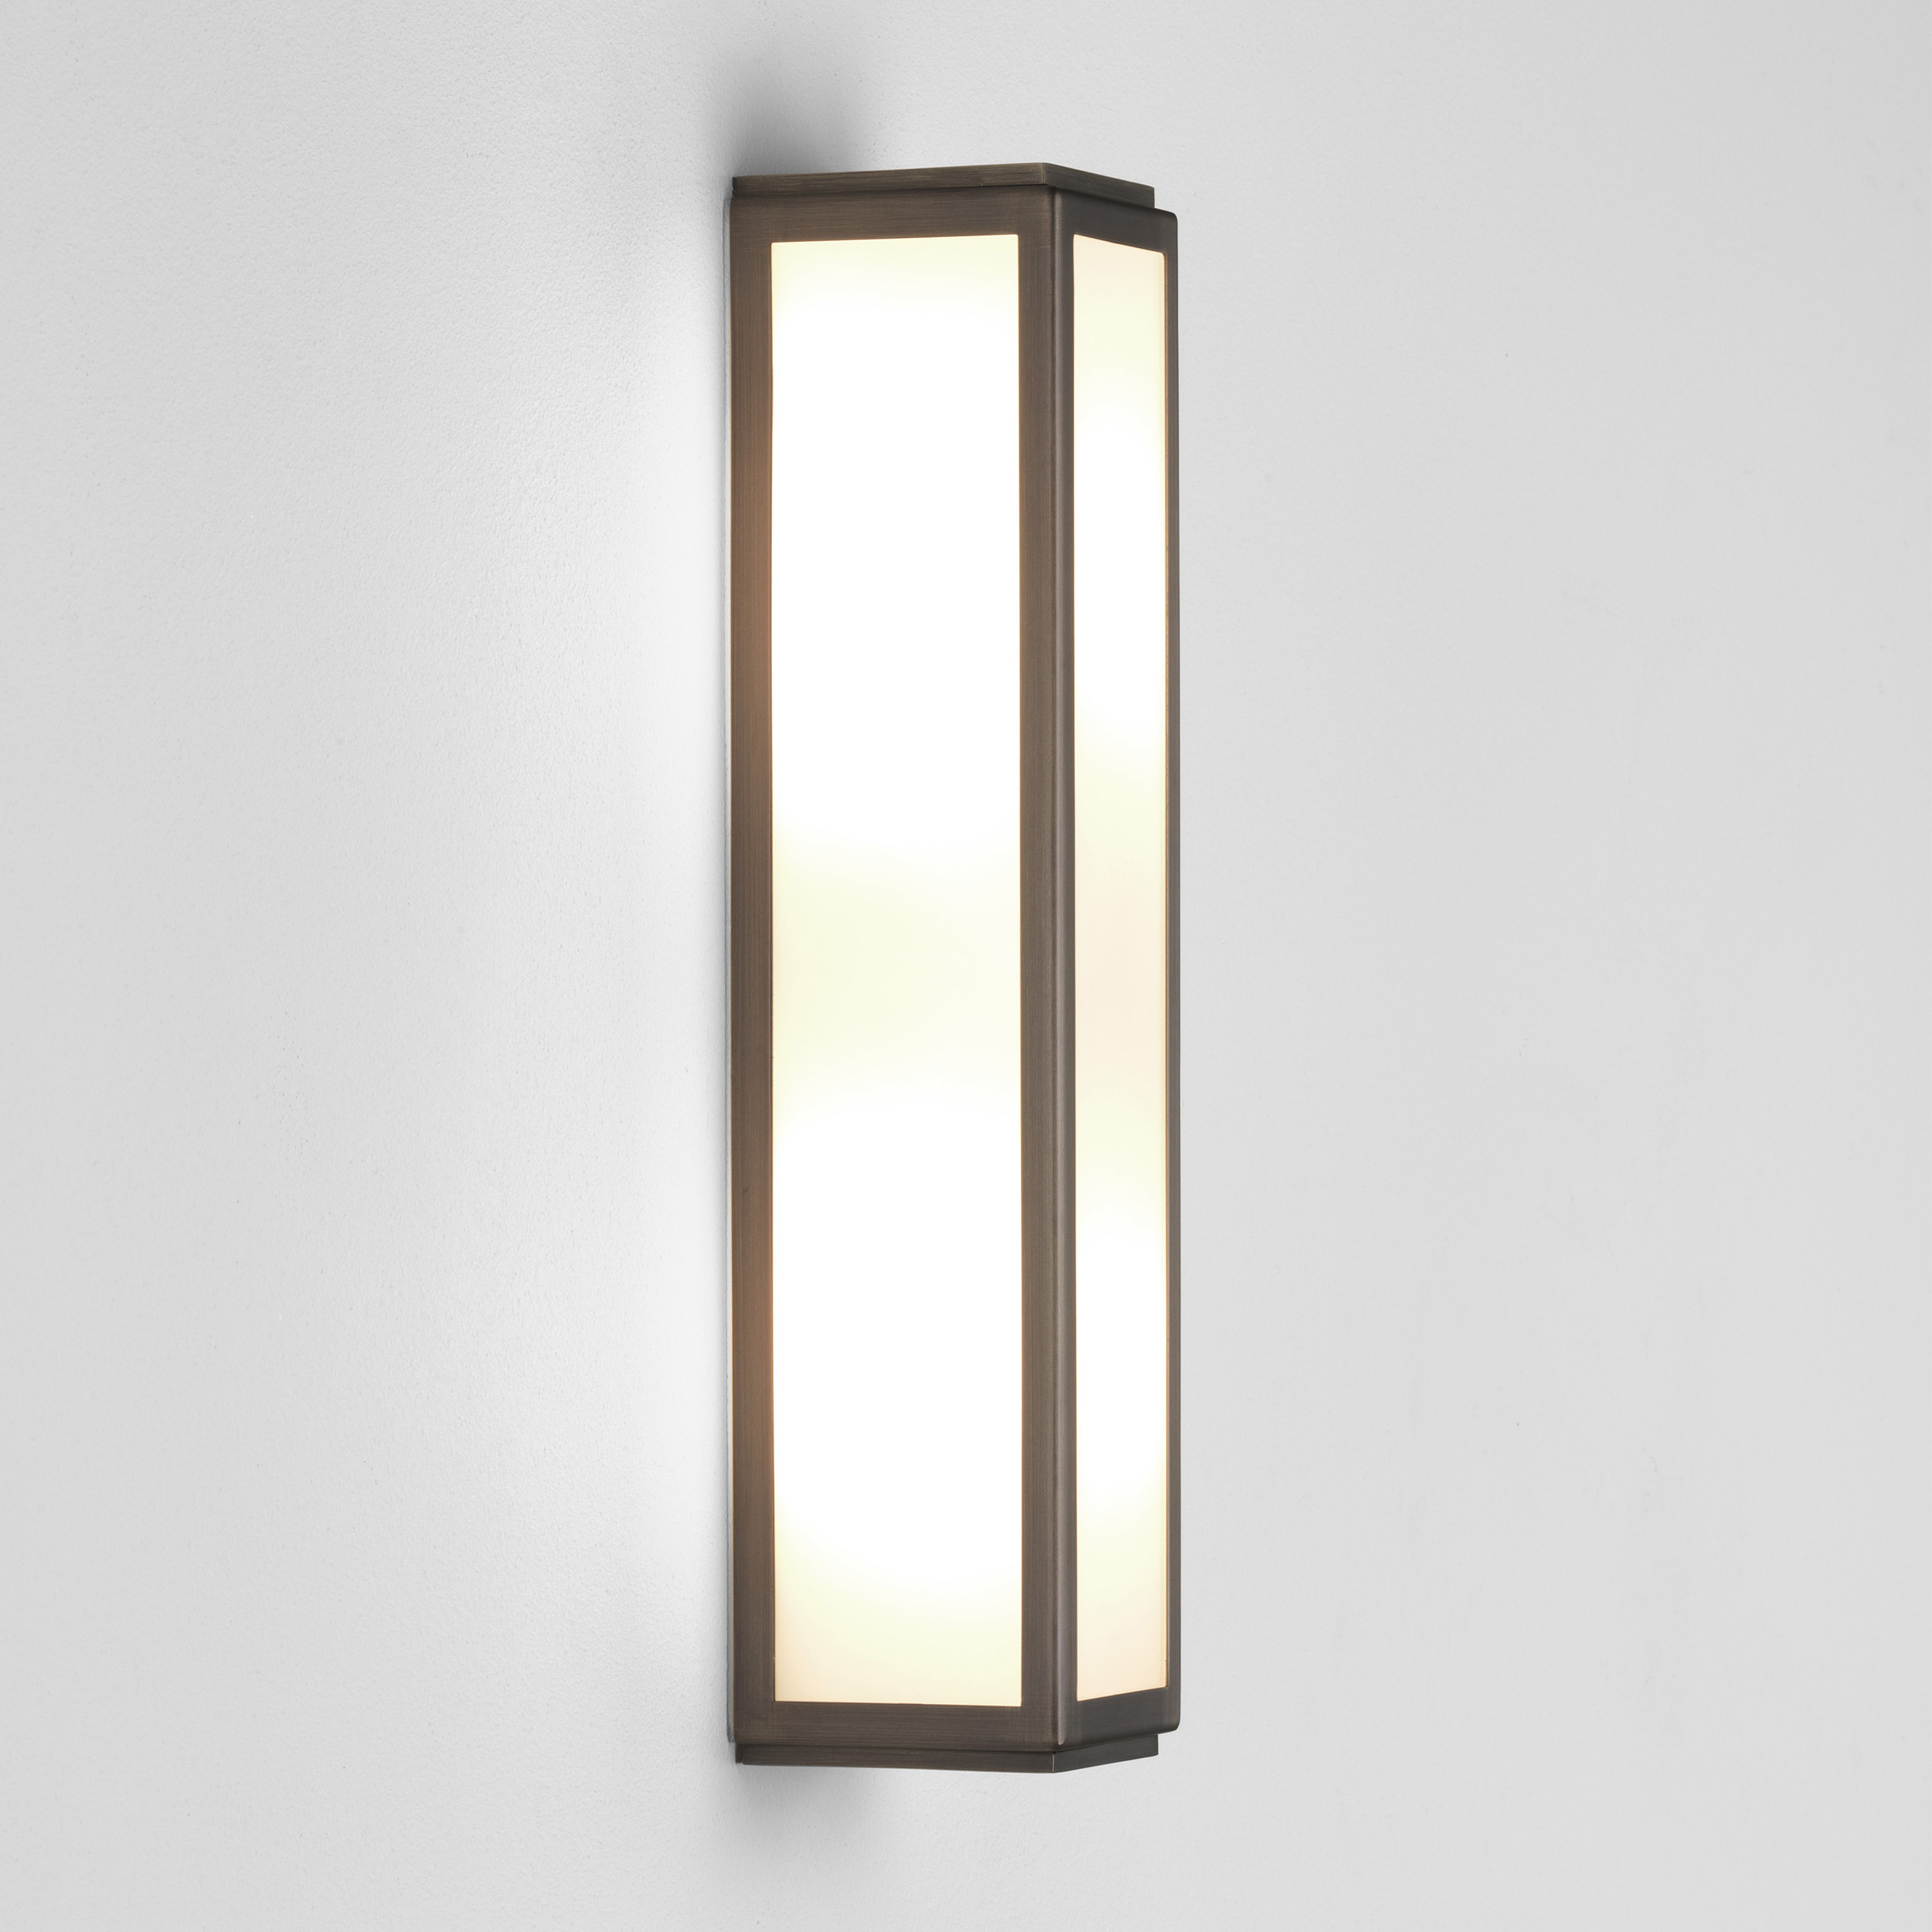 ASTRO Mashiko 360 Bathroom bronze LED wall light 6.4W 3000K warm white